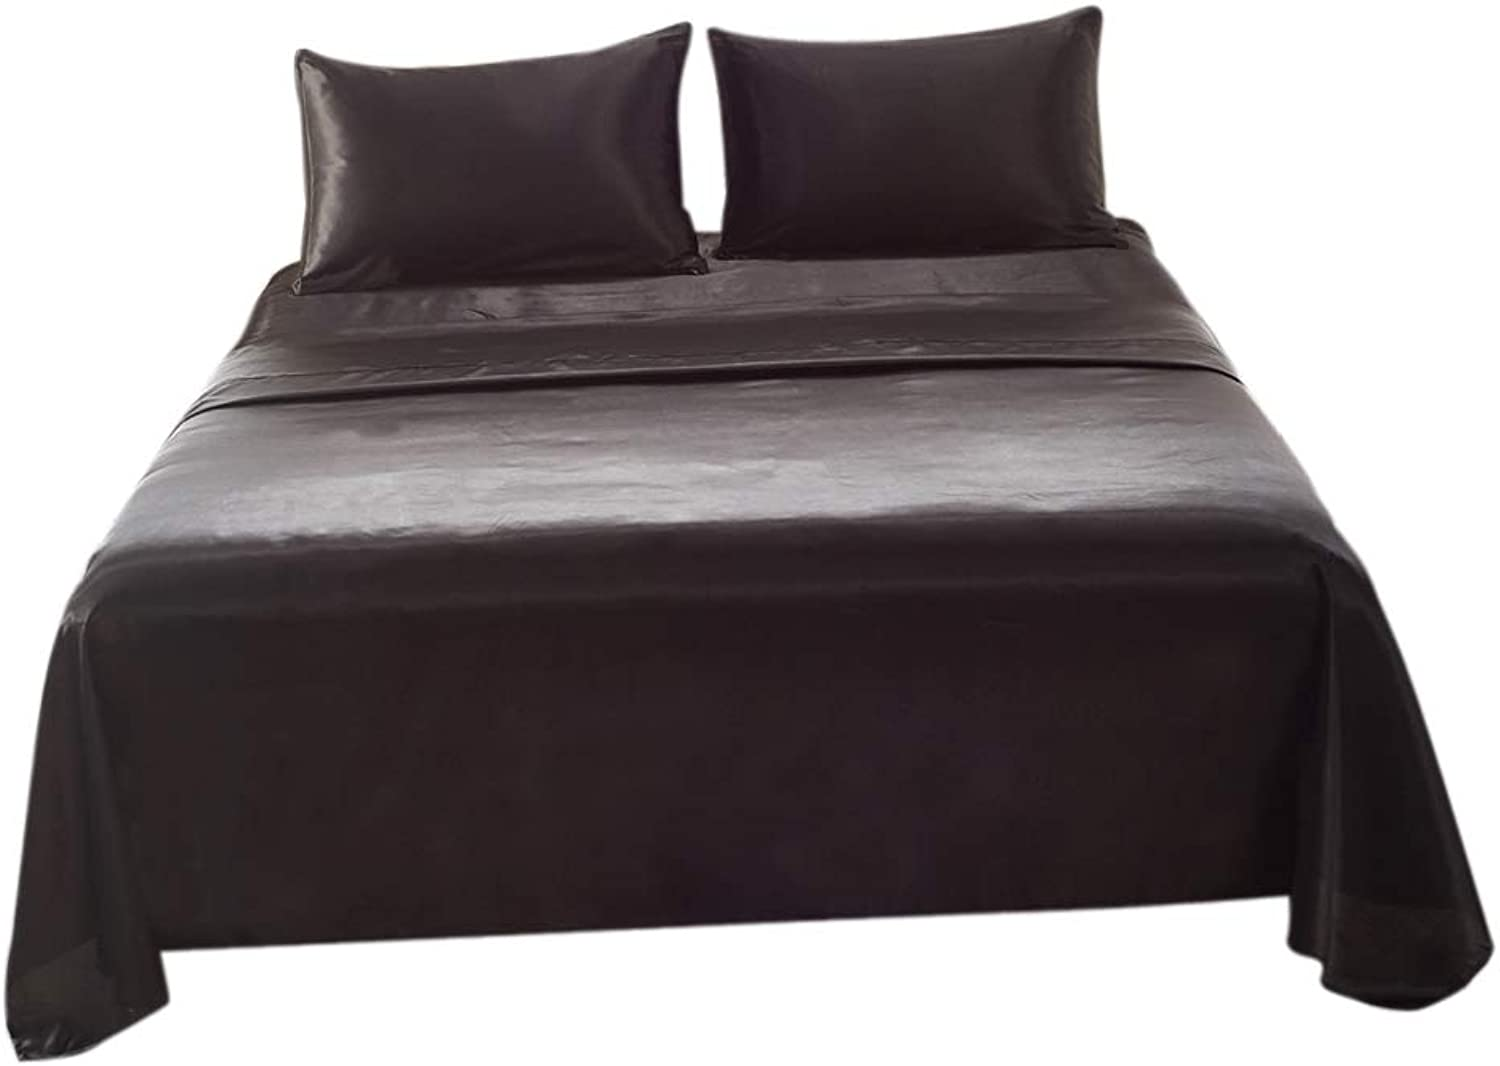 Homyl Bed Sheet Set  Fitted & Flat Sheet & Pillowcase  Twin Queen King Size Optional  Super Soft & Hypoallergenic  Black, King (4 Piece)